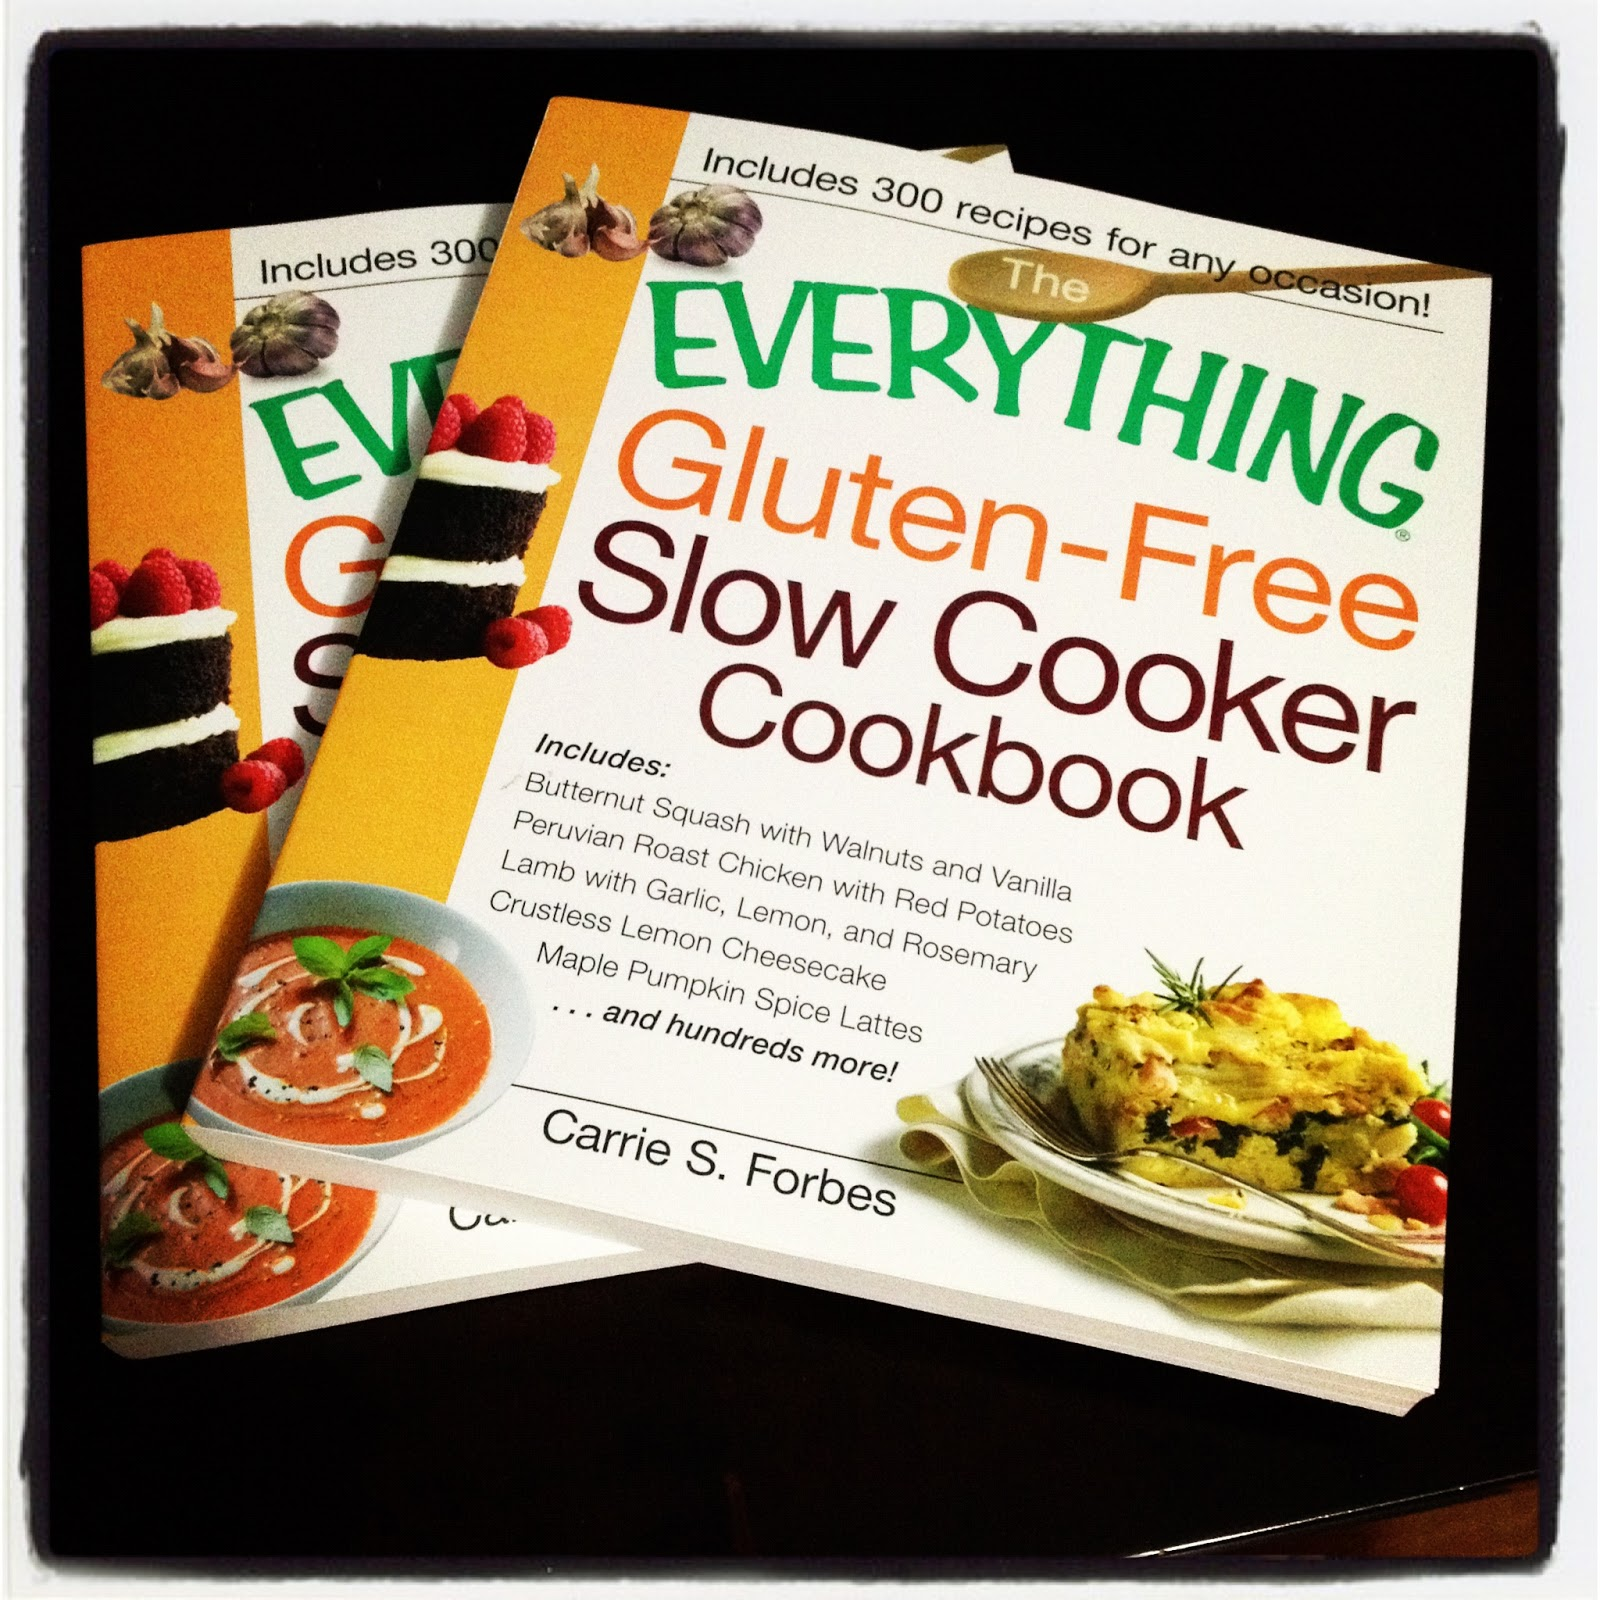 The Paleo Slow Cooker: Healthy, Gluten-Free Meals the Easy Way [Arsy Vartanian, Chris Kresser 100loli.tk, Amy Kubal] on 100loli.tk *FREE* shipping on qualifying offers. The Paleo Slow Cooker is Whole30 recommended and approved. Note: This is a revised and updated edition. The Paleo diet has been the latest health movement.